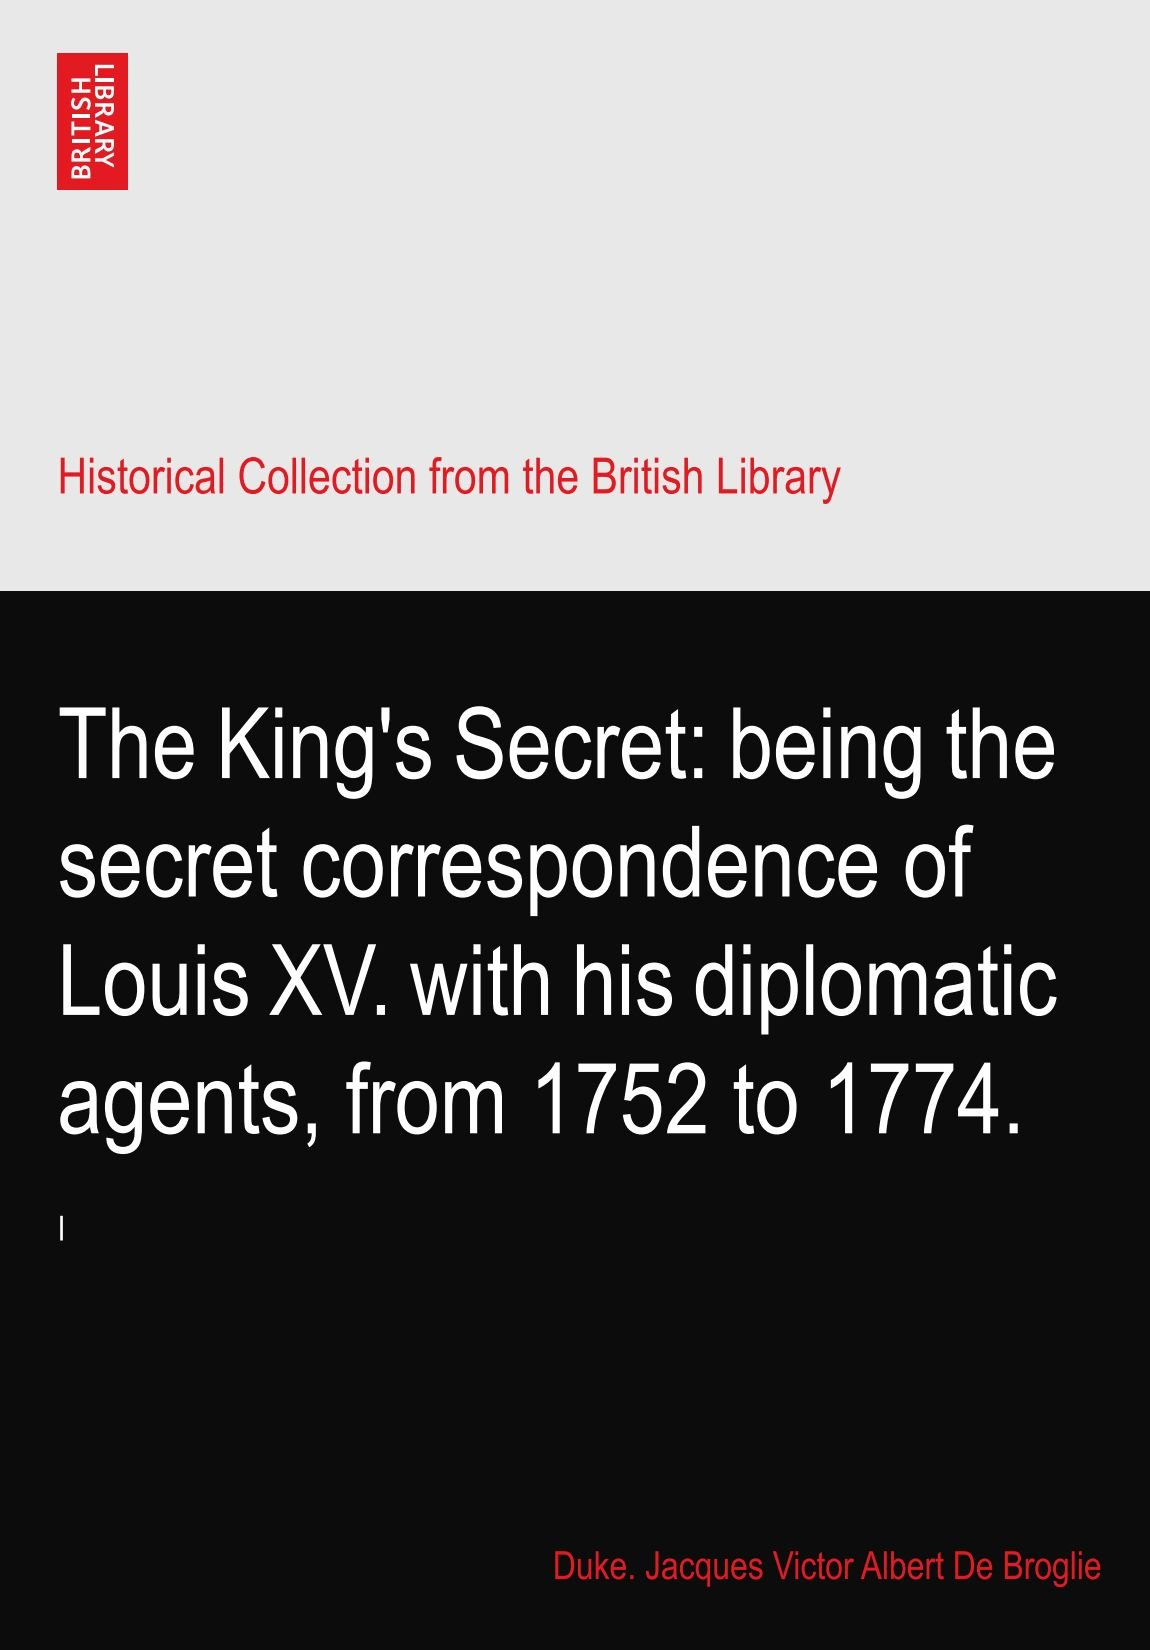 The King's Secret: being the secret correspondence of Louis XV. with his diplomatic agents, from 1752 to 1774. pdf epub